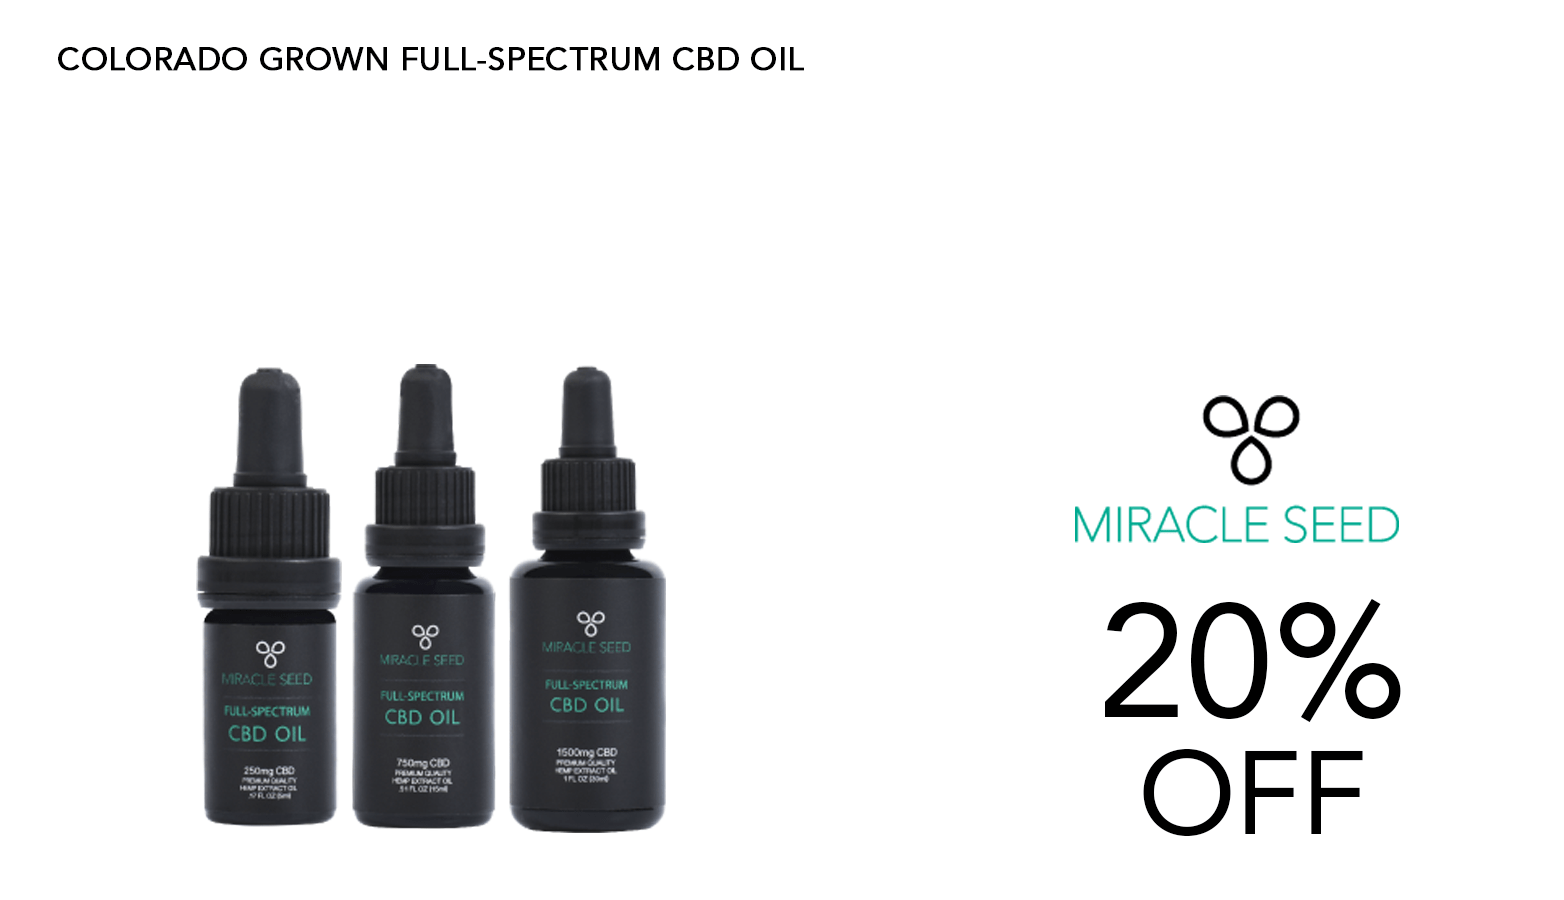 Miracle Seed CBD Coupon Code Offer Website